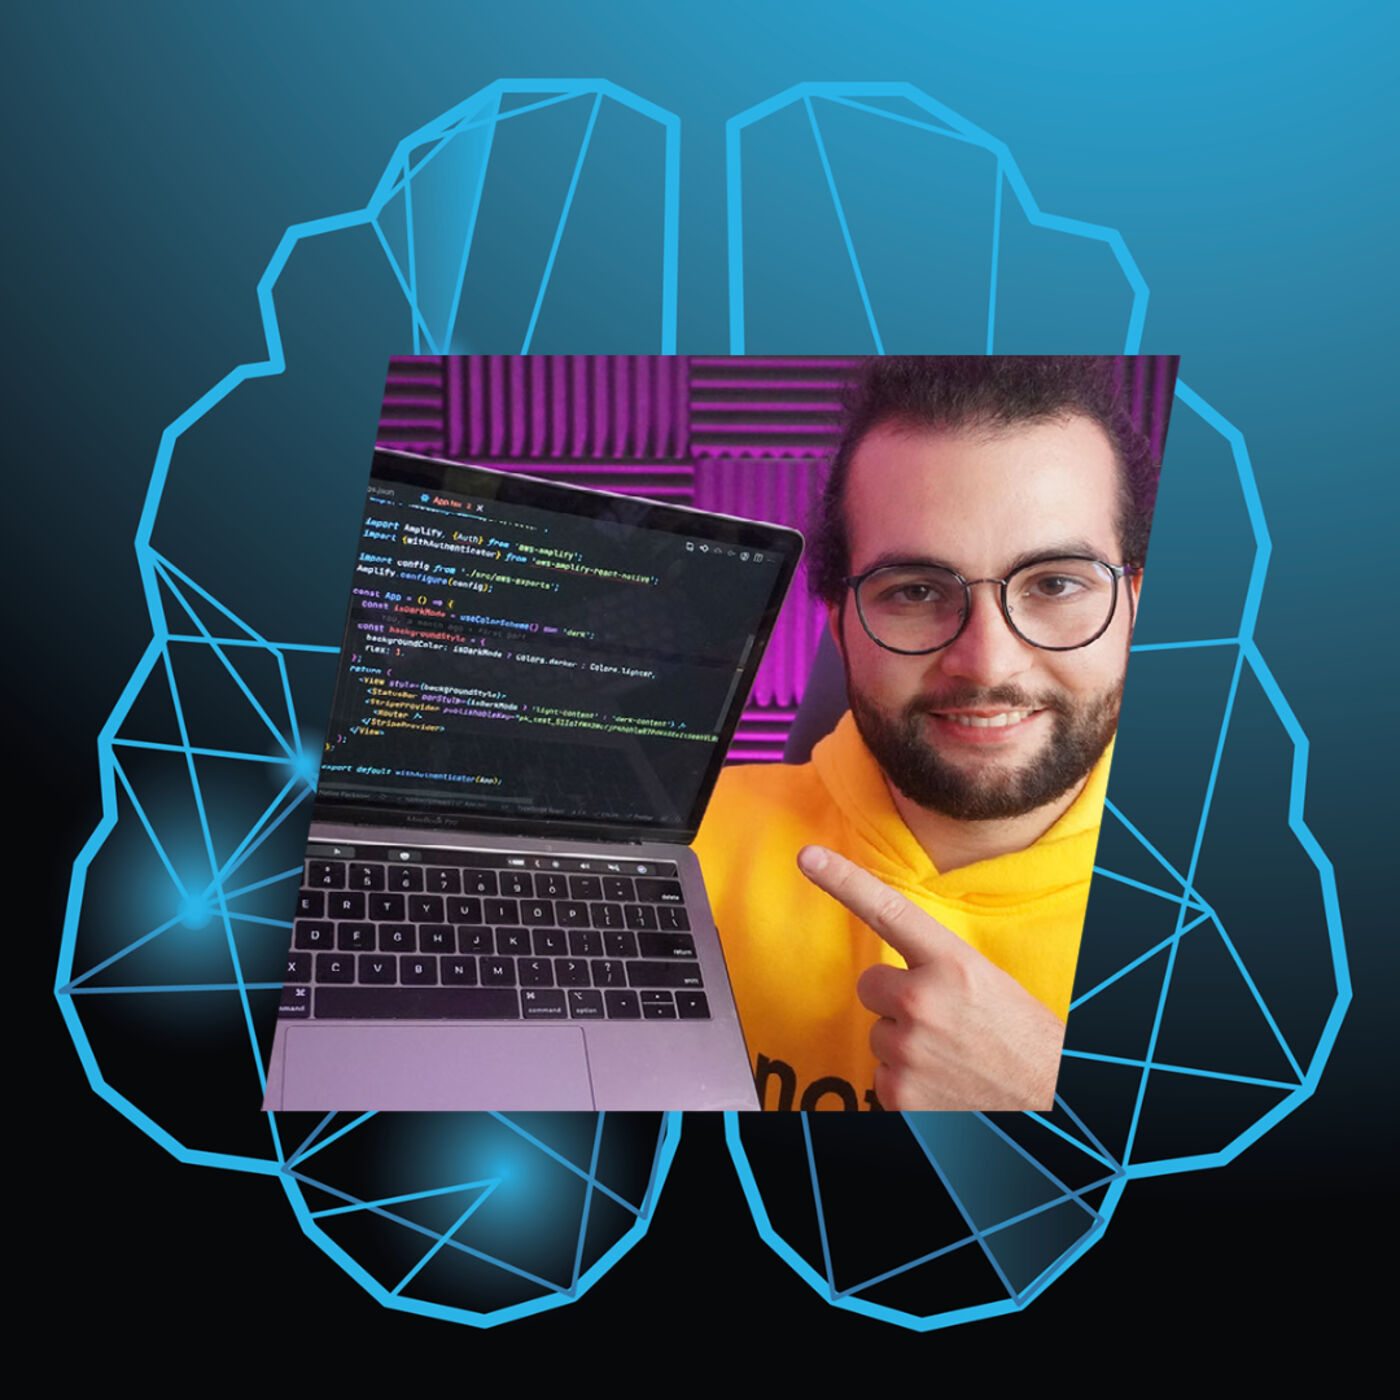 Vadim Savin - From working at Amazon to becoming a CTO and a YouTube creator